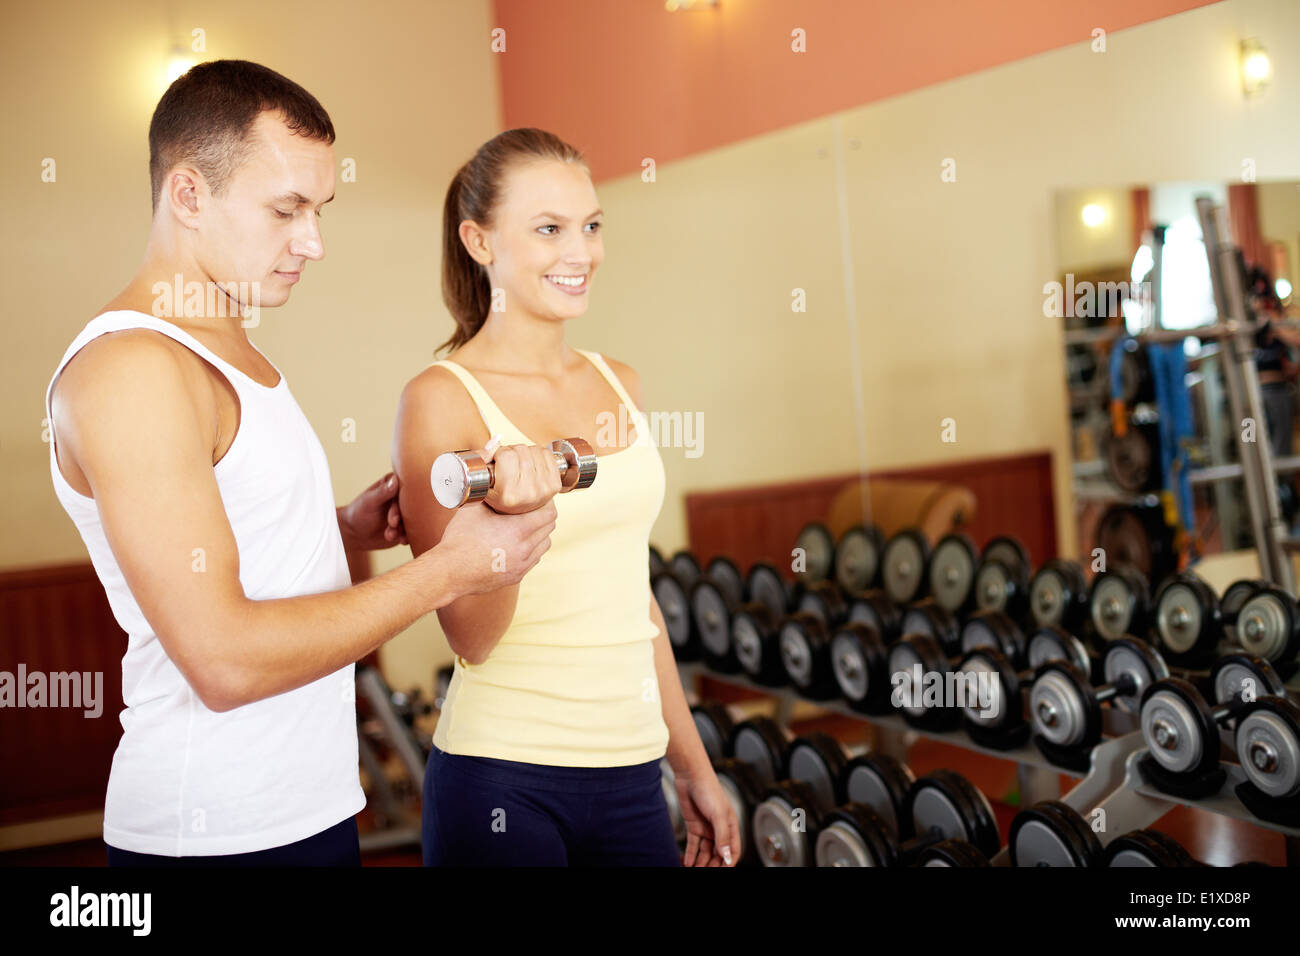 Portrait of pretty girl training in gym with her trainer helping her - Stock Image